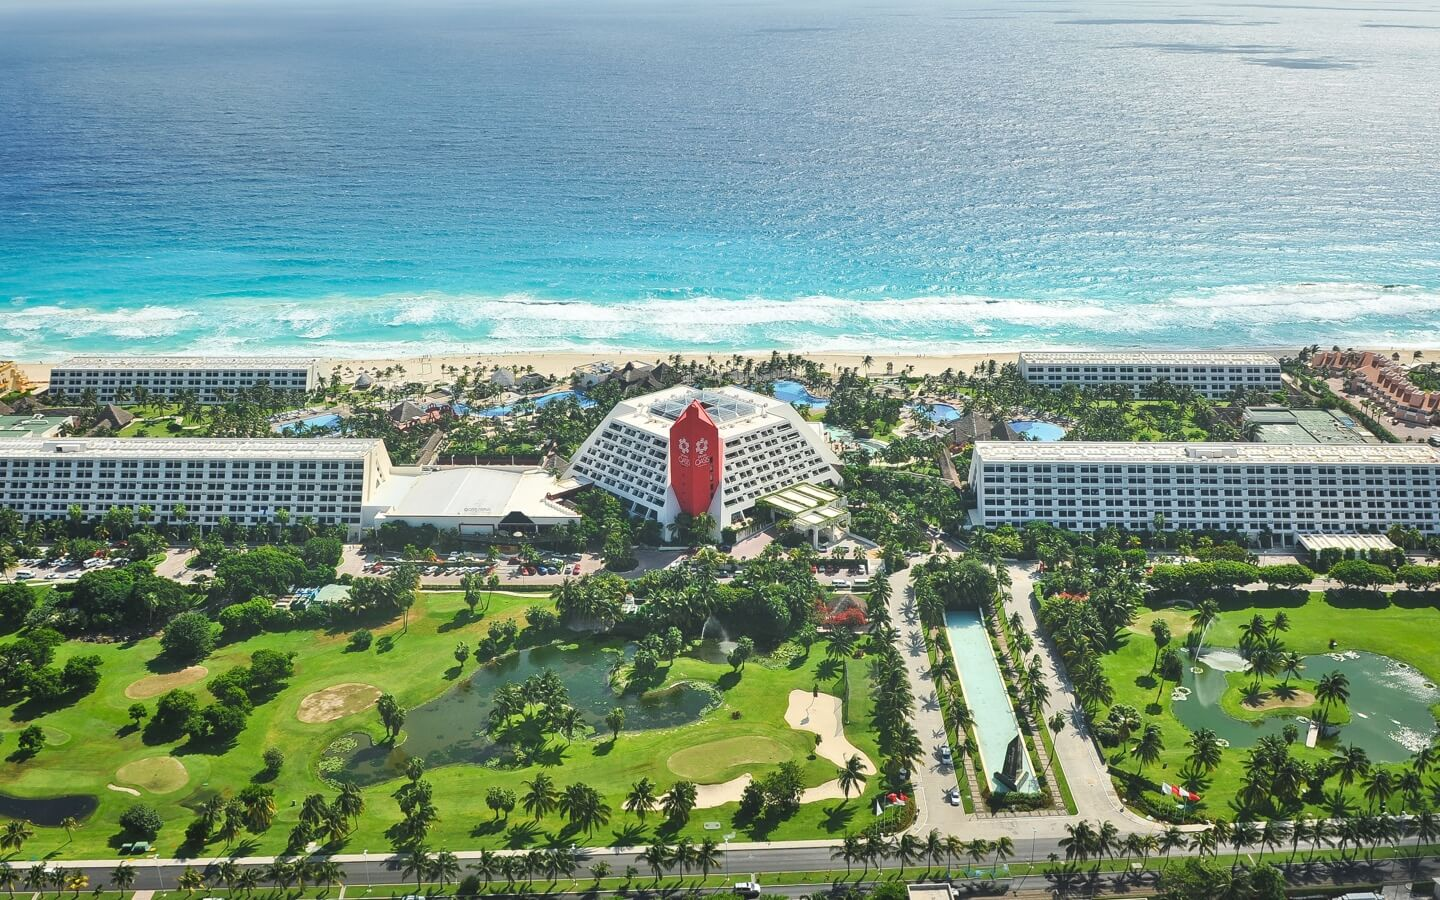 Oasis Cancun Lite Hotel View